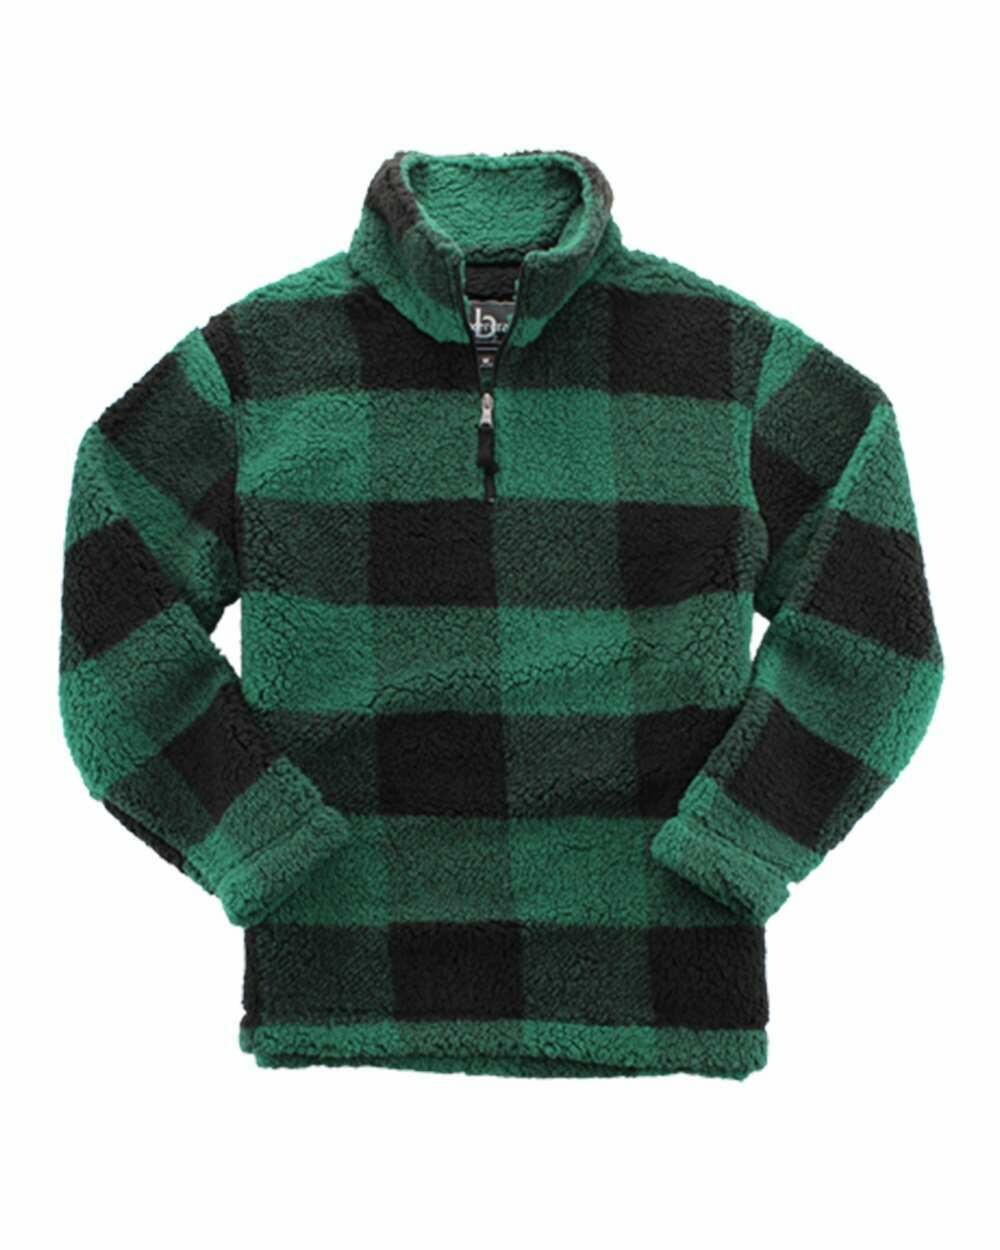 Unisex Plaid Sherpa Fleece Quarter-Zip Pullover with choice of logo or monogram